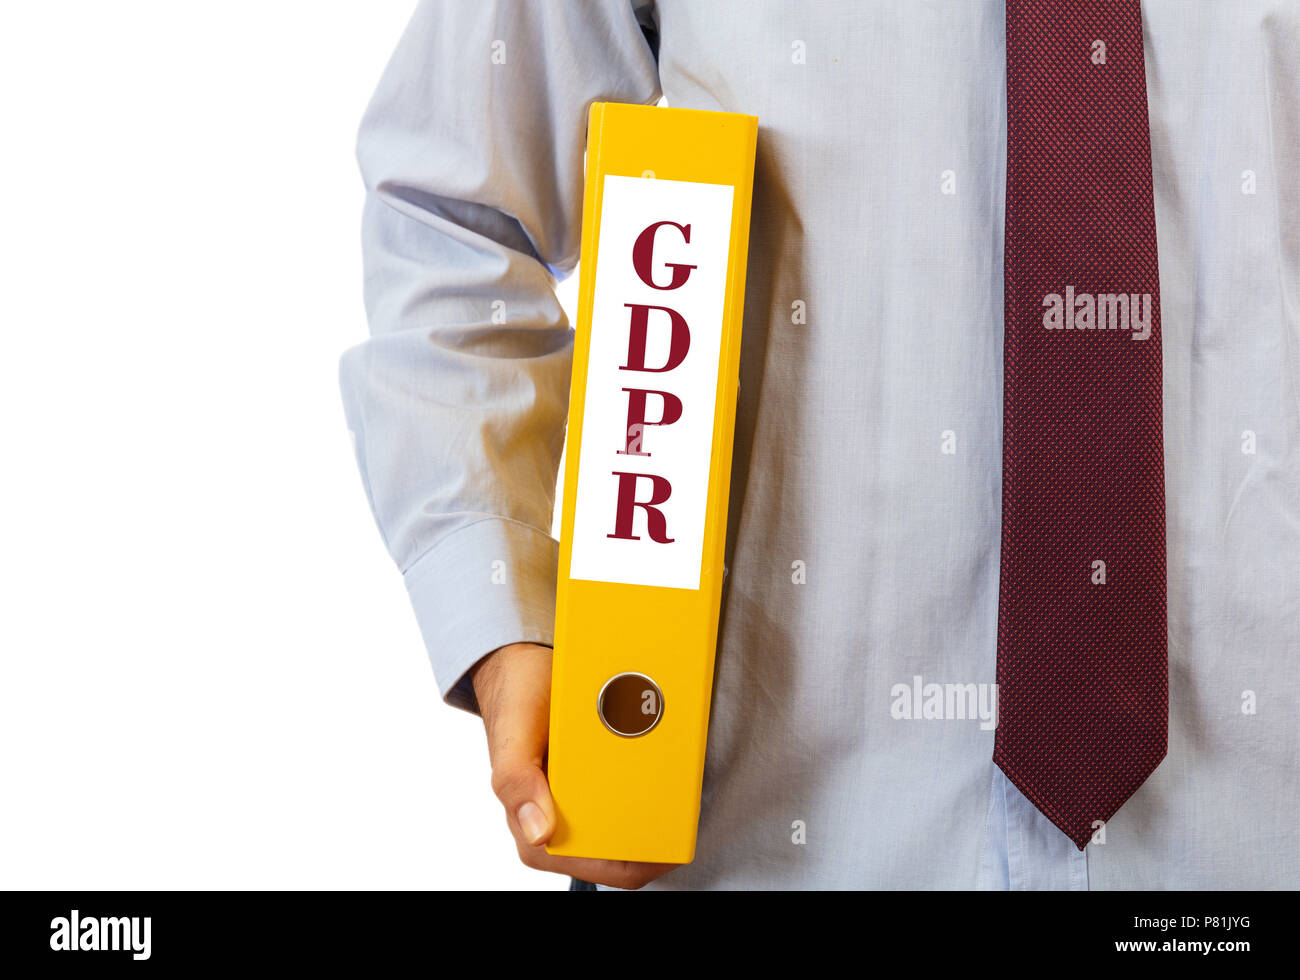 GDPR compliance. Manager holding a binder folder on white background, text GDPR, clipping path - Stock Image